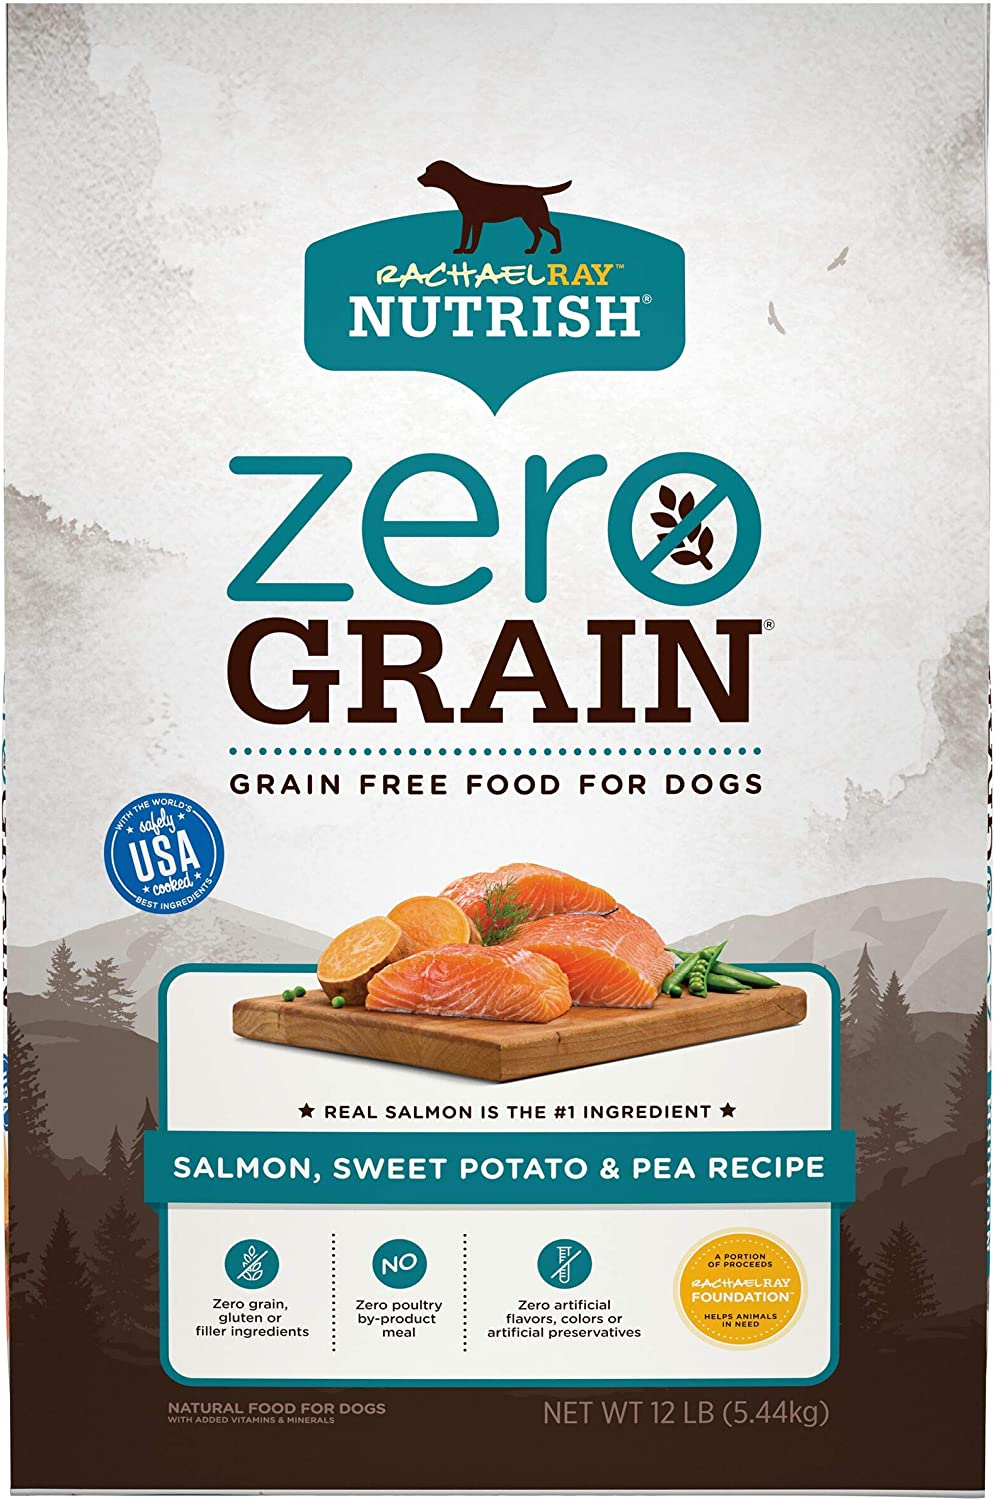 Rachael Ray Nutrish Zero Grain Natural Dry Dog Food, Salmon & Sweet Potato Recipe, 12 Pounds, Grain Free